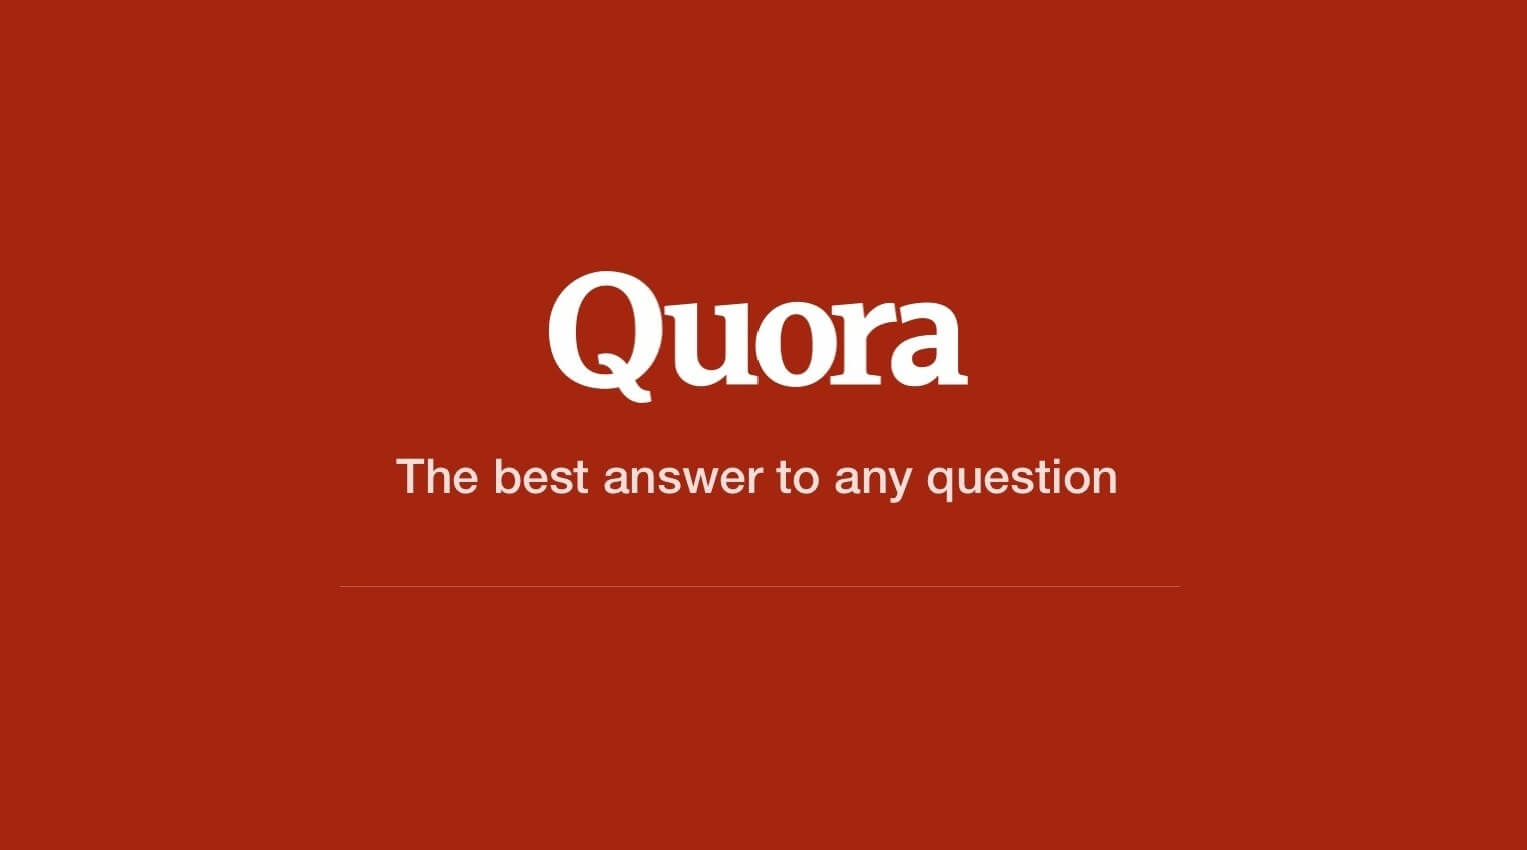 Quora is now available in Hindi